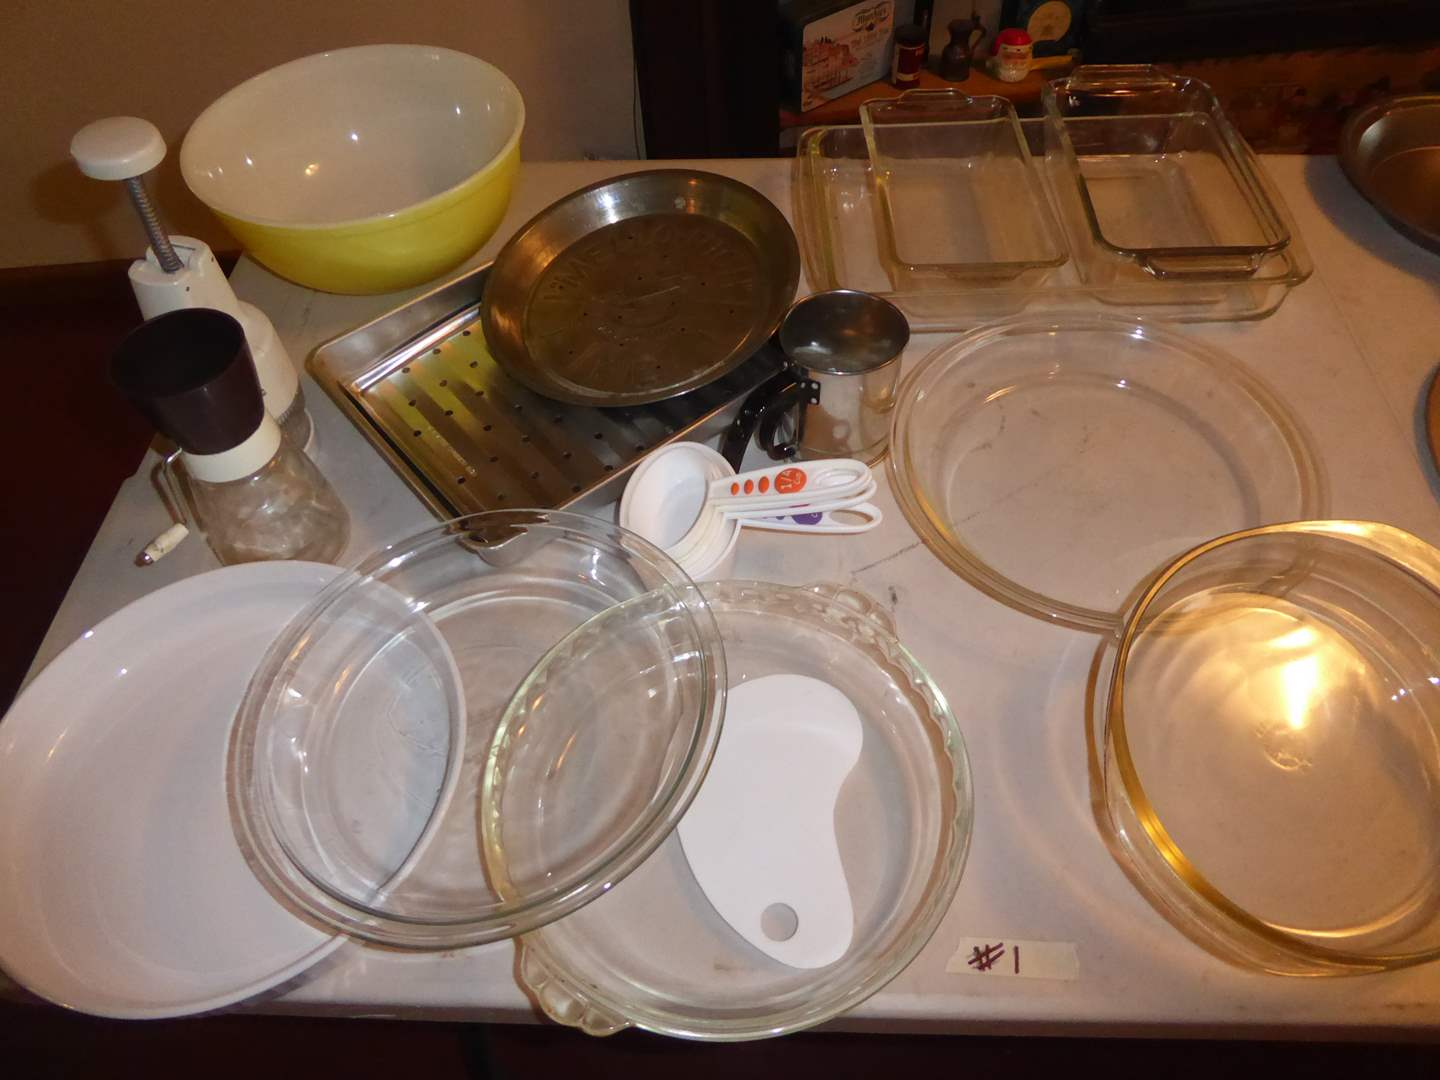 Lot # 1 - Pyrex Bowl, Pans & Other Baking Dishes (main image)